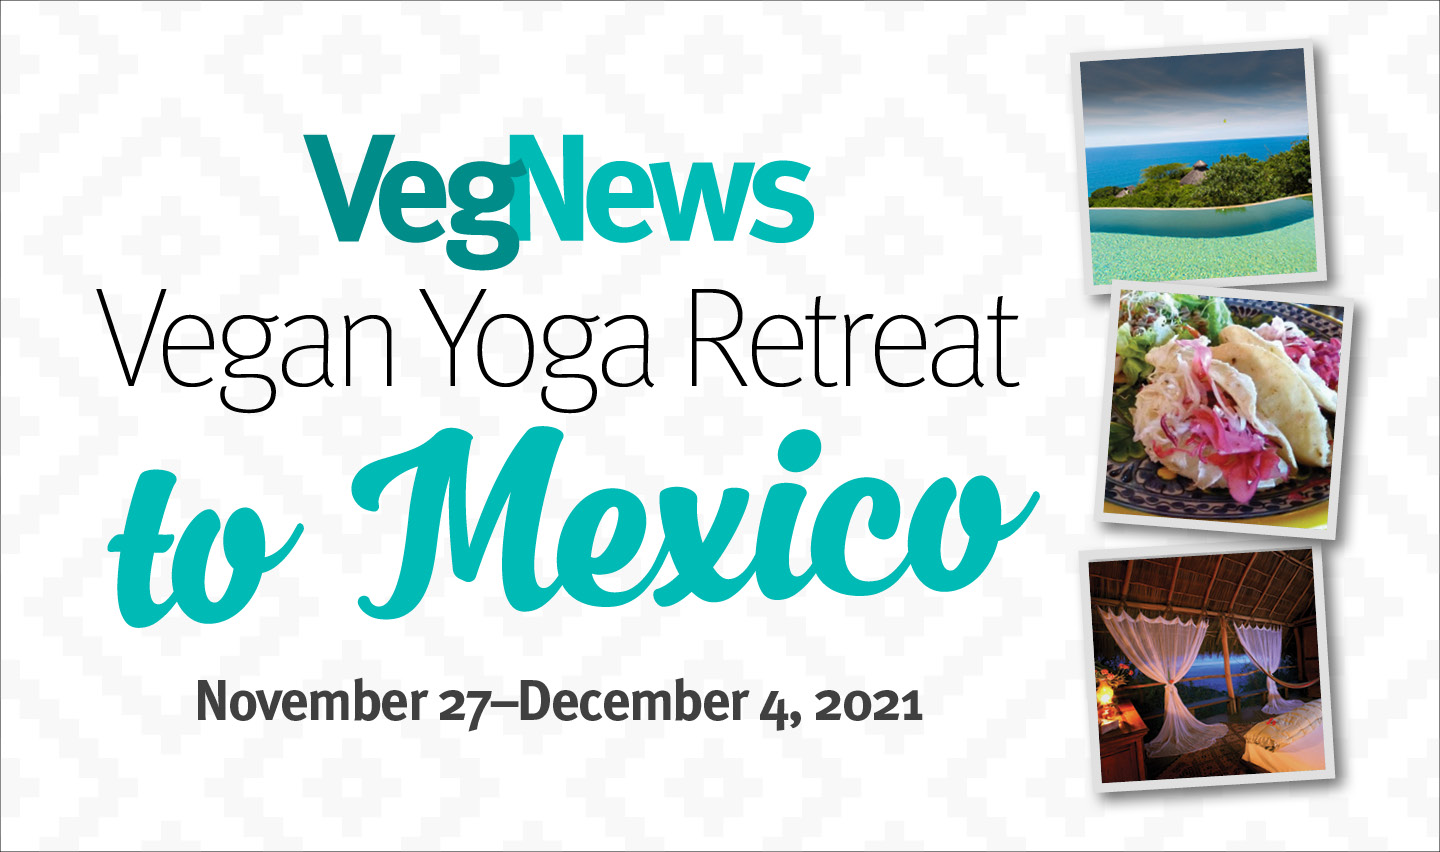 VegNews.YogaRetreat.2021.1440x852